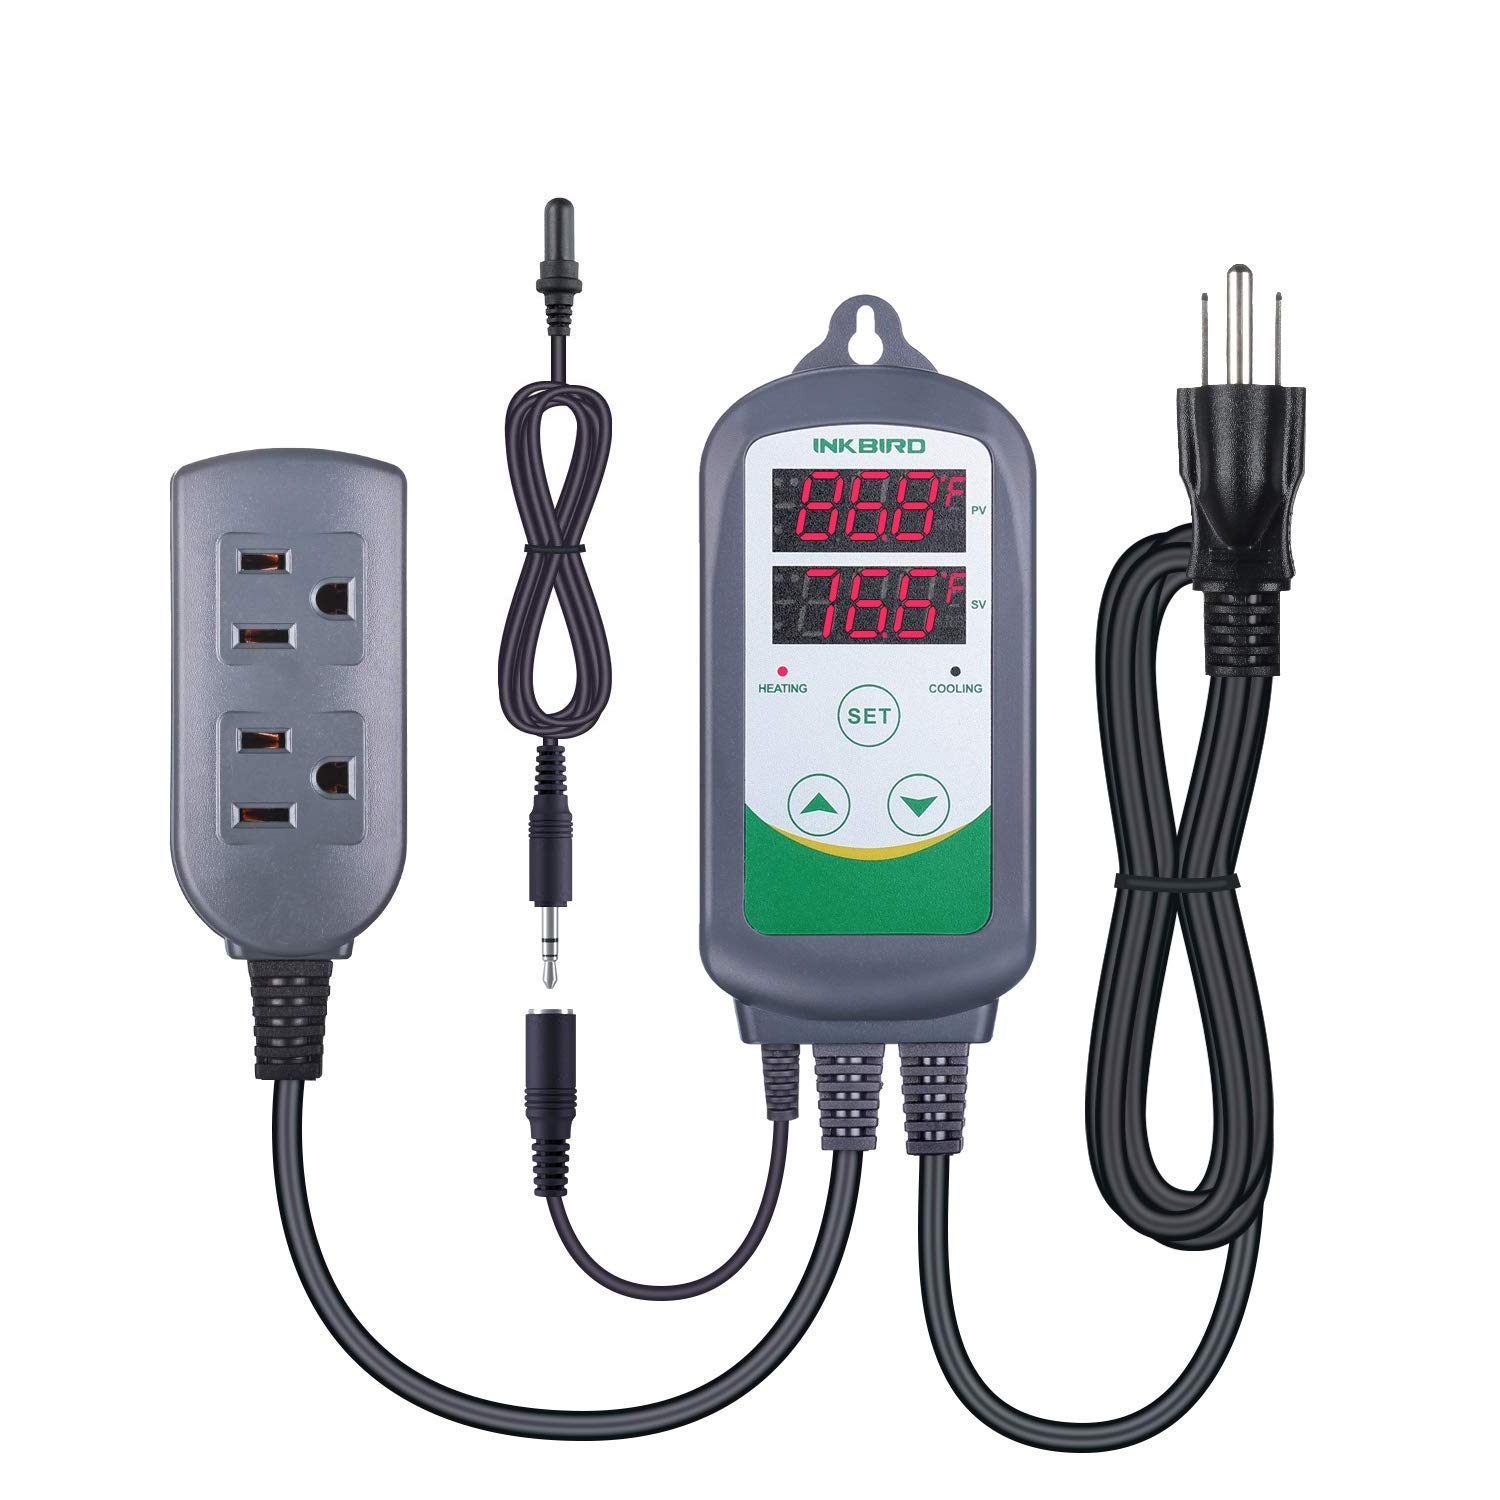 Inkbird ITC308S Temperature Controller for Aquarium with Submersible Probe, Heating Cooling Outlets Thermostat for Heater and Cooling Fans by Inkbird